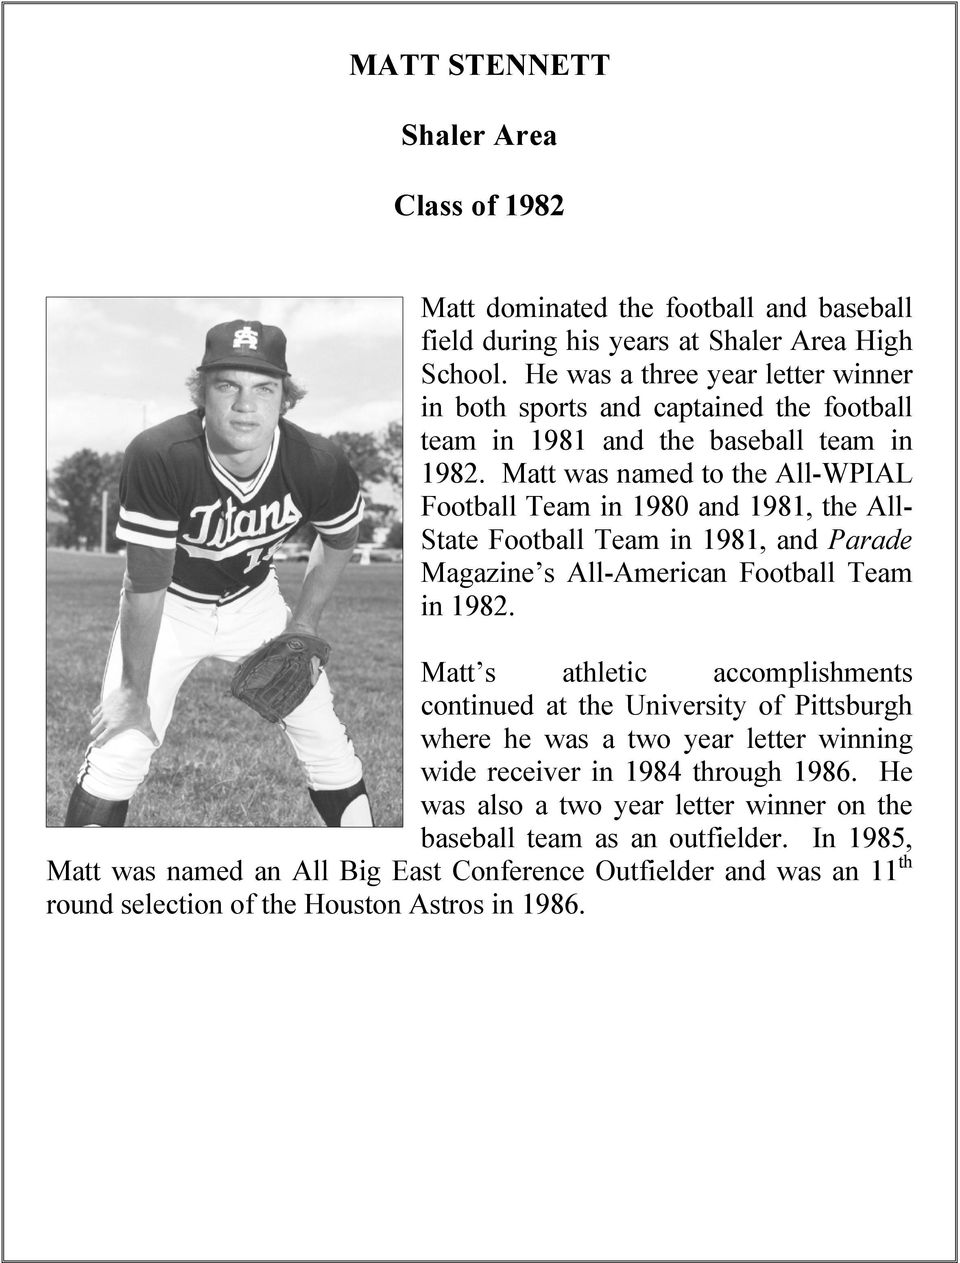 Matt was named to the All-WPIAL Football Team in 1980 and 1981, the All- State Football Team in 1981, and Parade Magazine s All-American Football Team in 1982.